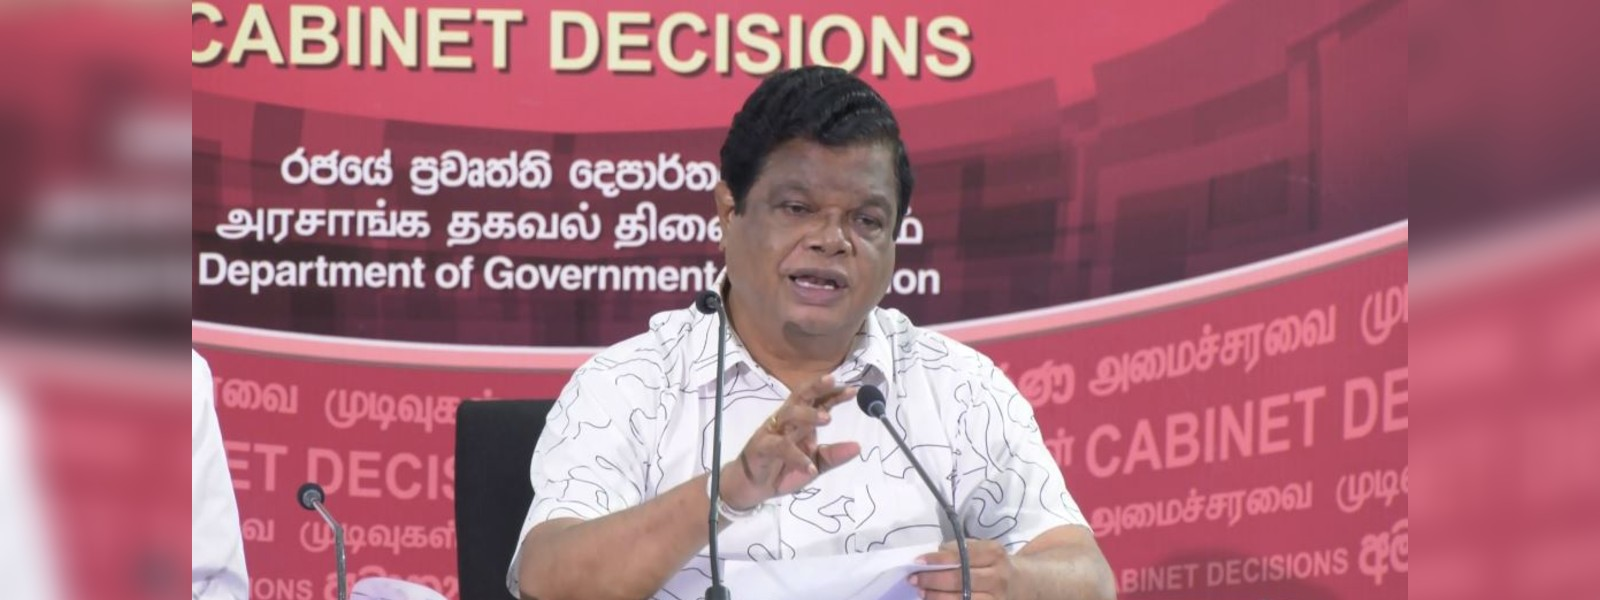 Cabinet decides to build a 300 MW power plant in Puttalam